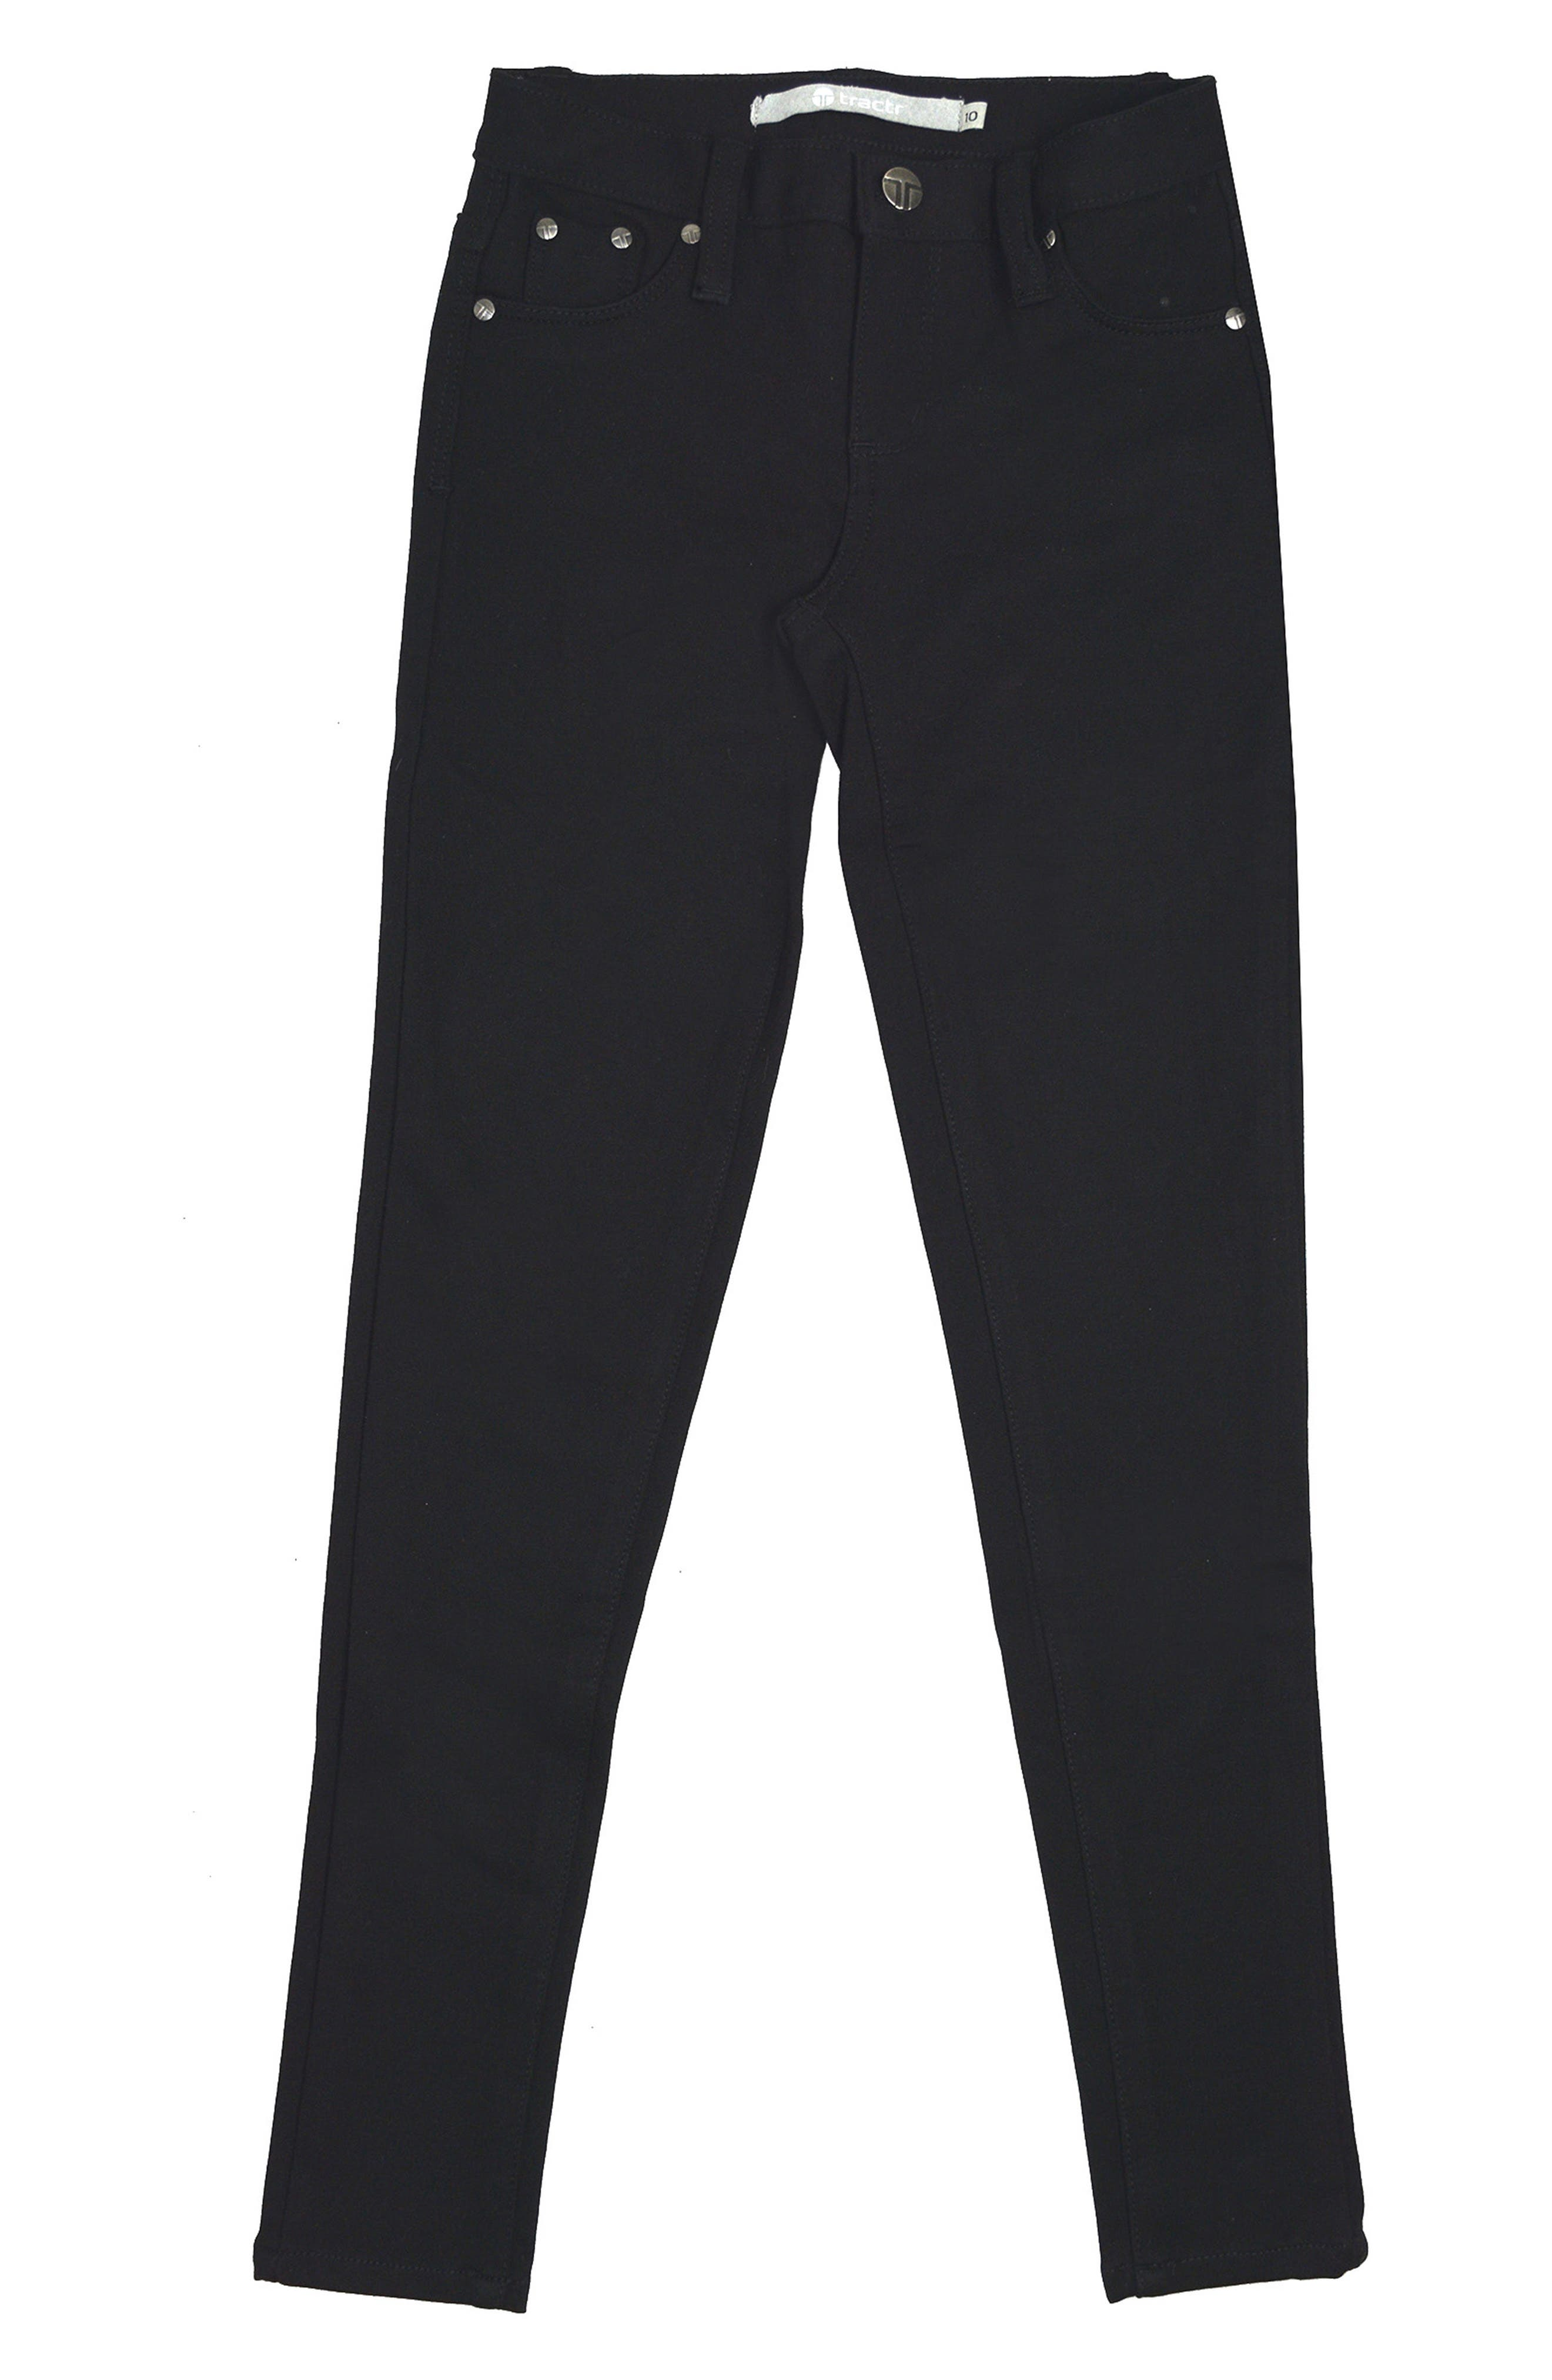 Alternate Image 1 Selected - Tractr Ponte Skinny Jeans (Little Girls)